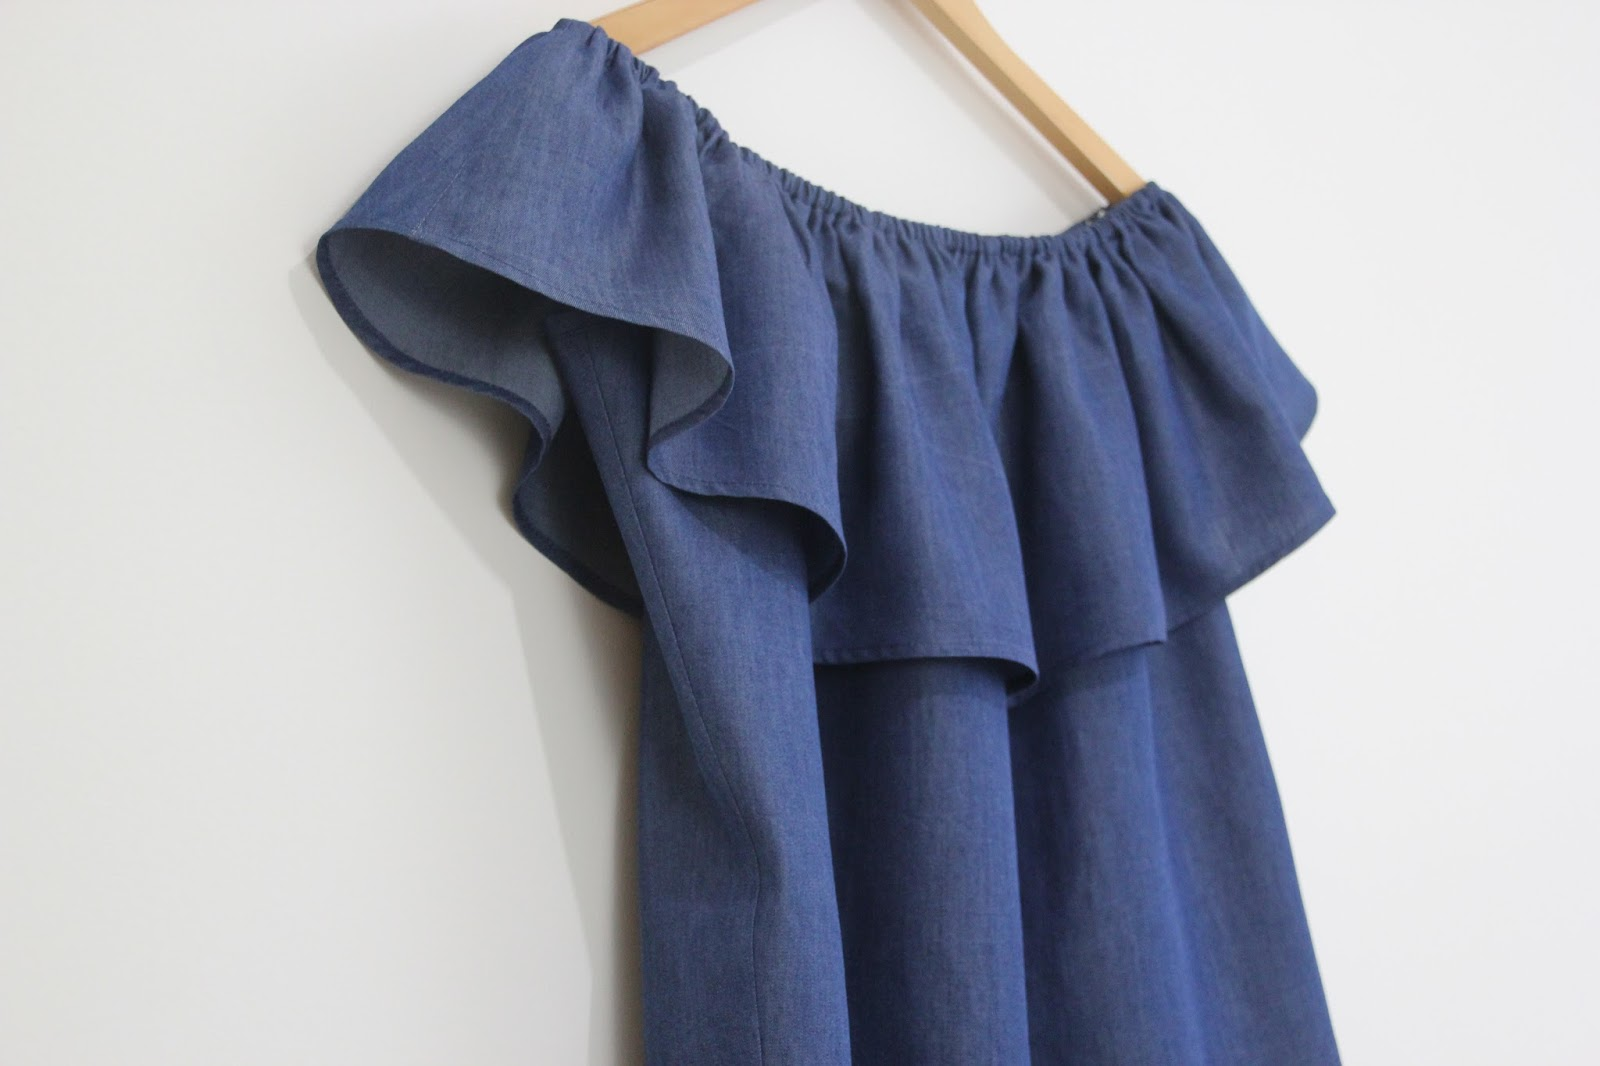 diy blusa sin hombros denim oh mother mine diy